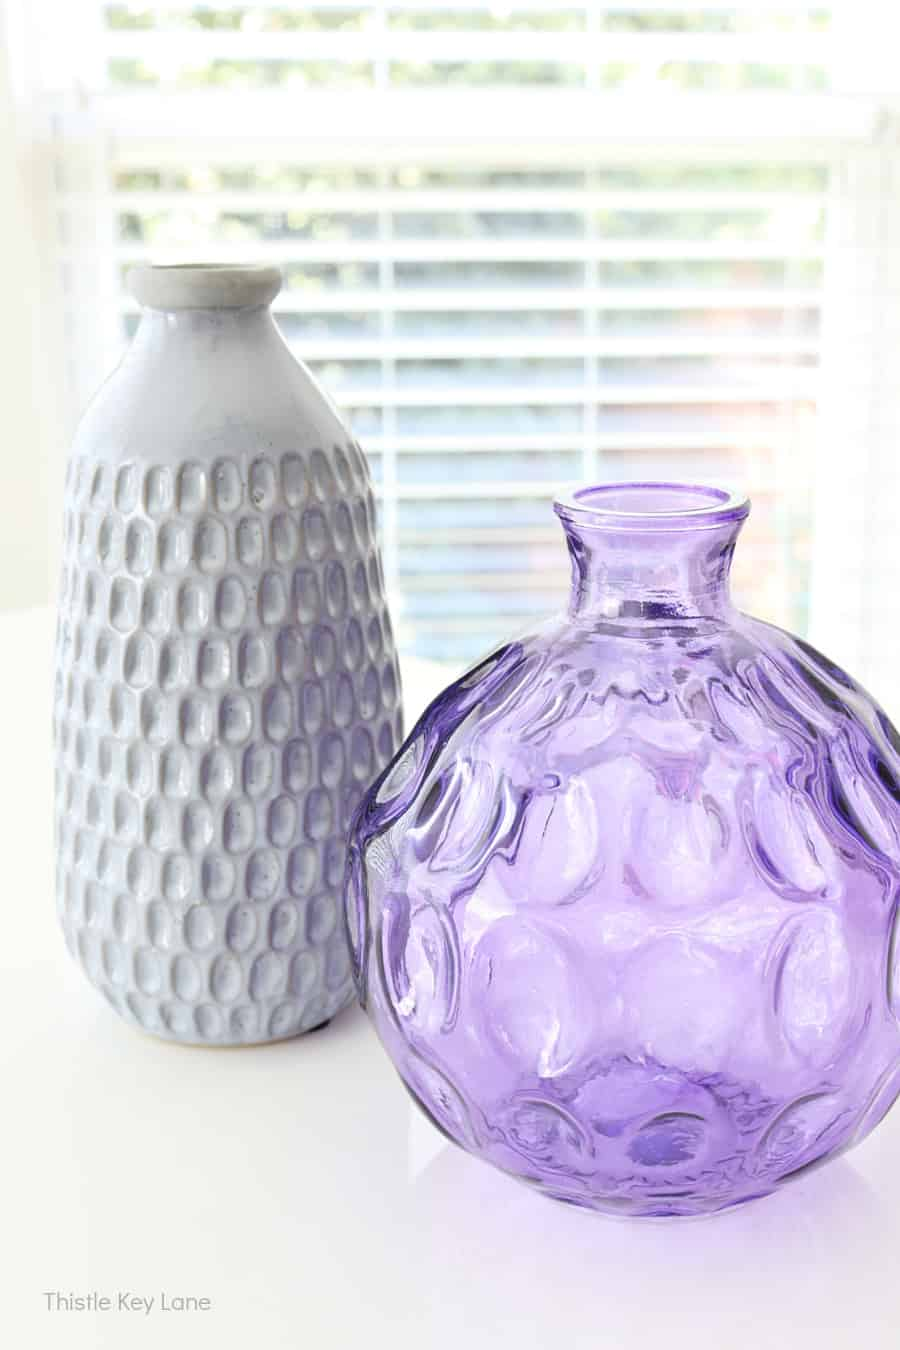 Two unmatched vases with a similar design. Thrift Store Vase Makeover.